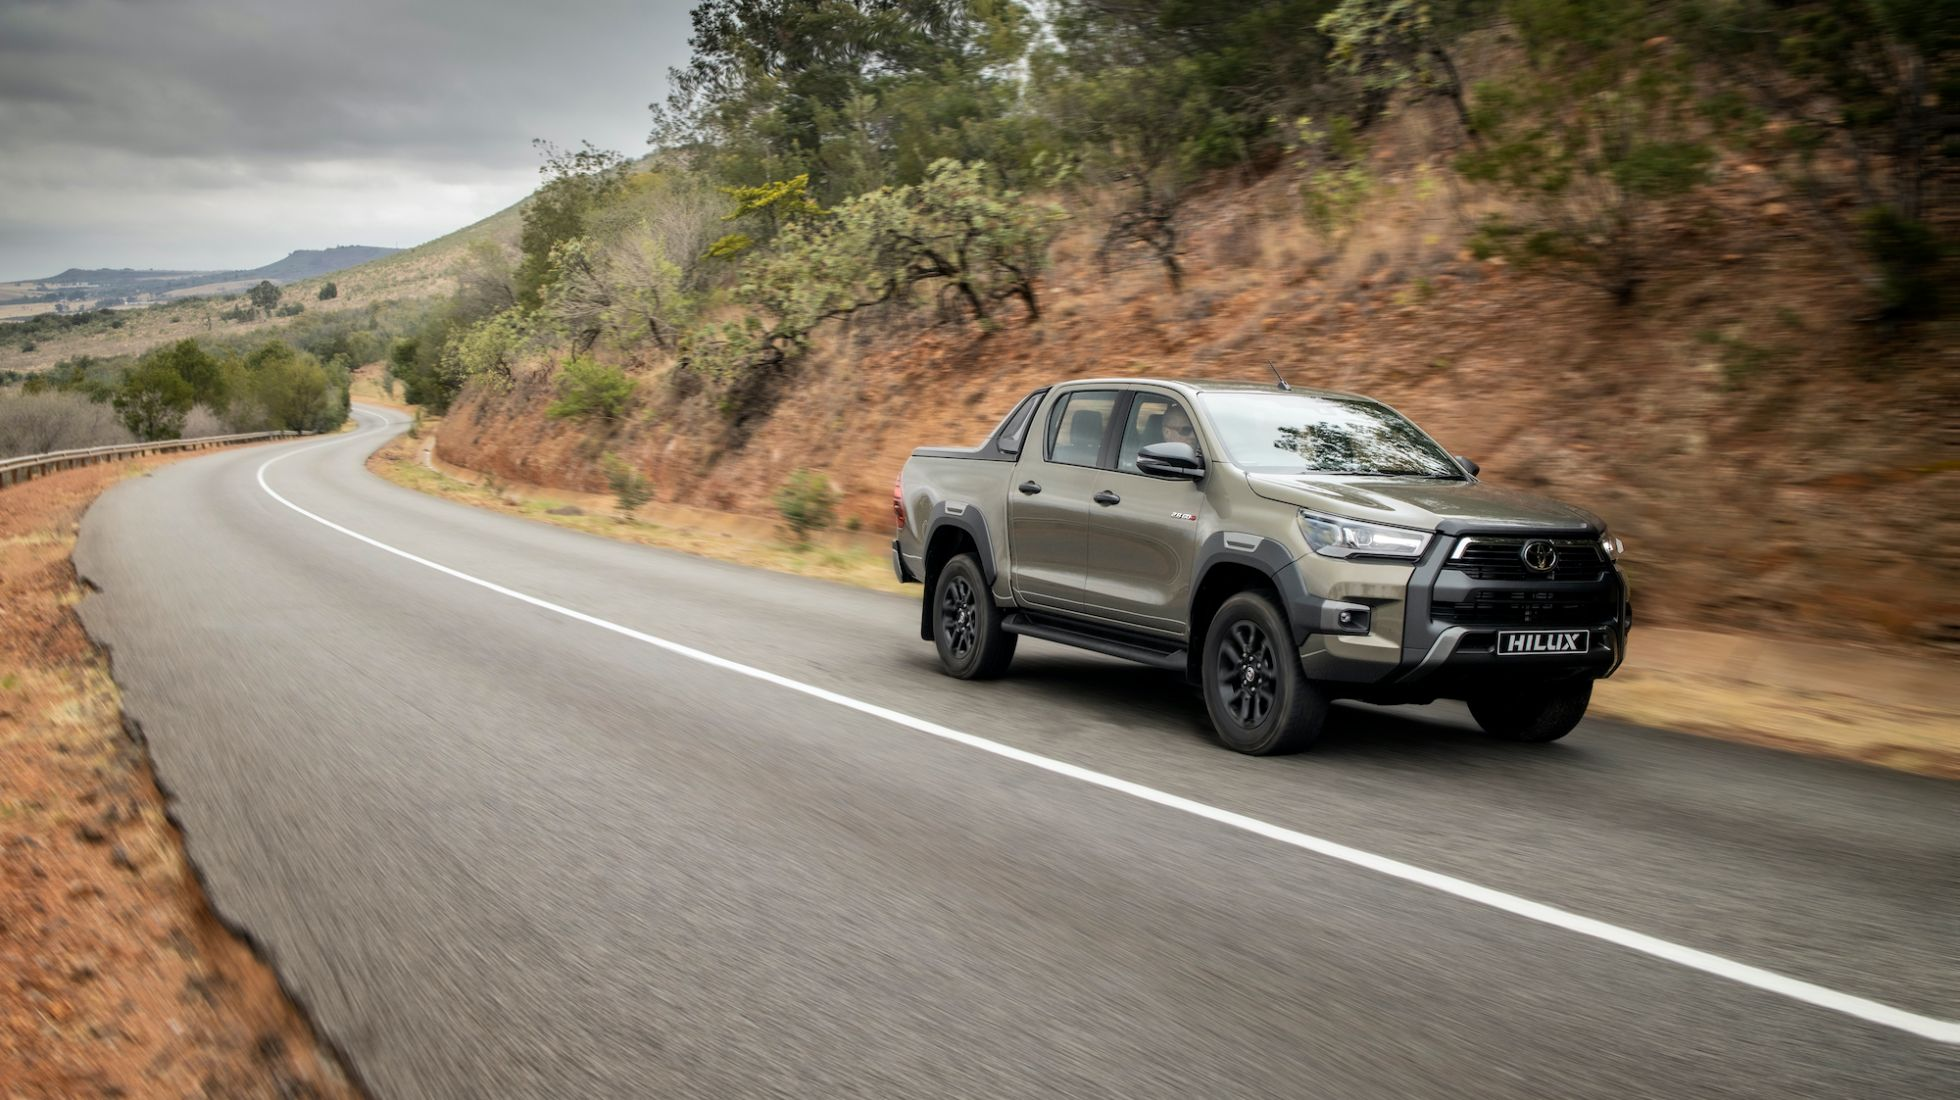 Hilux ups the ante in power and tech.